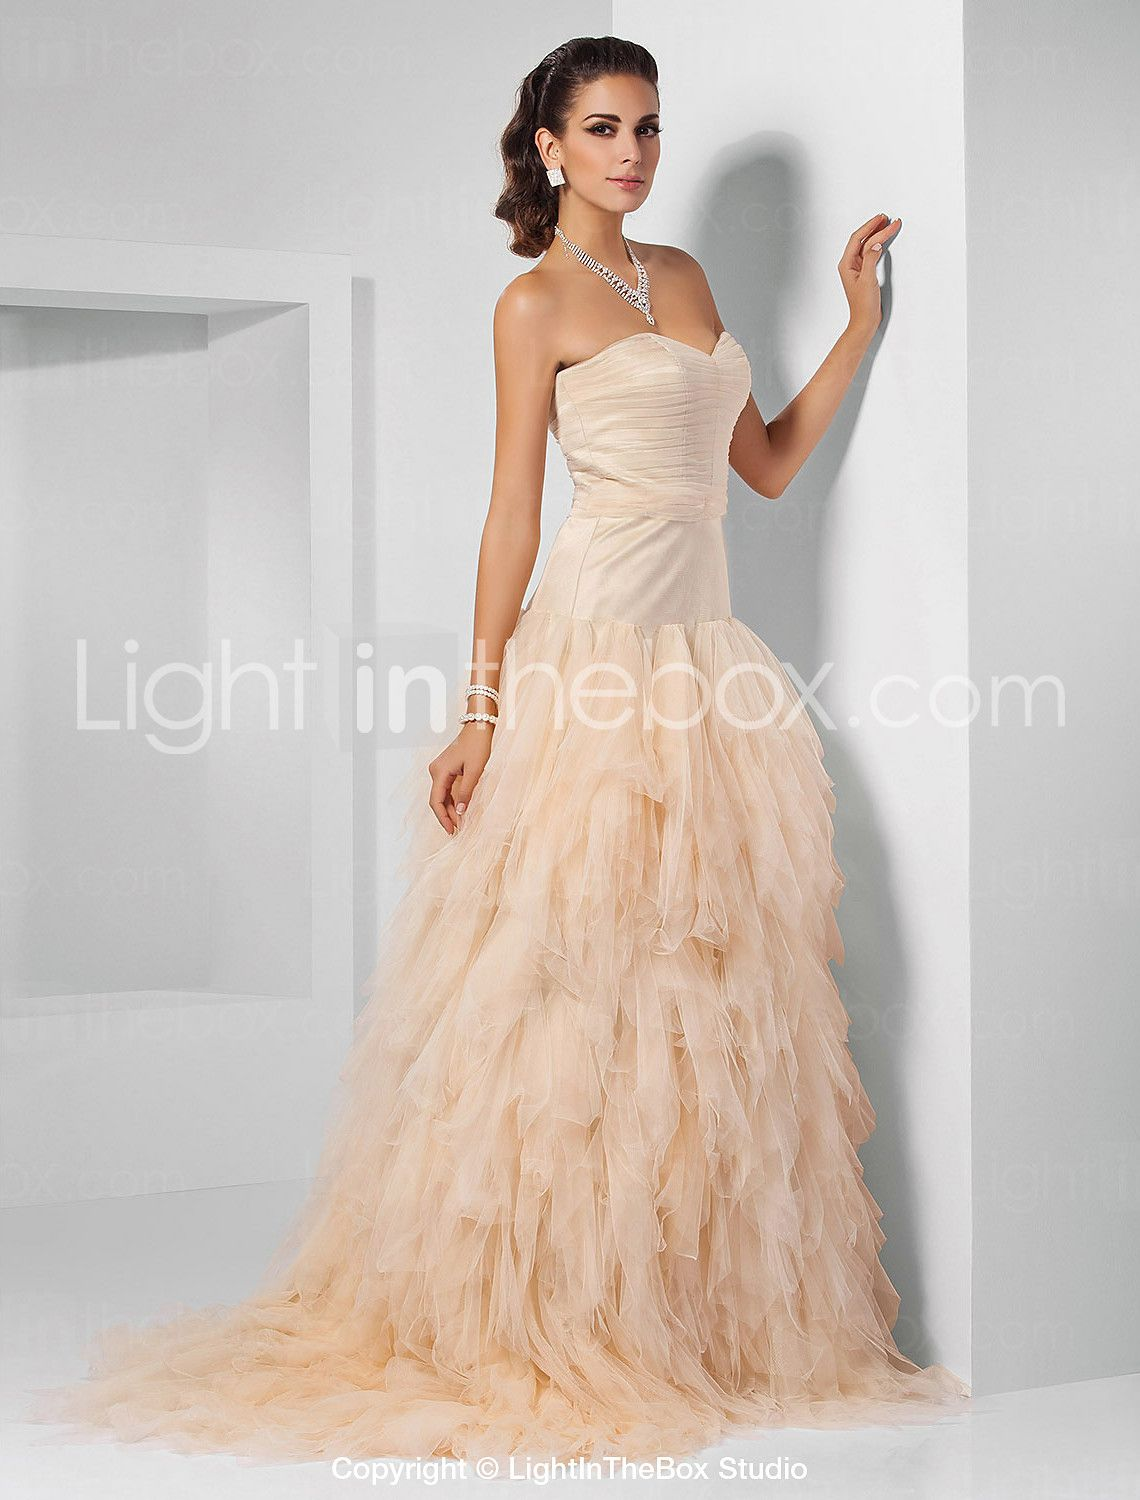 Ts couture prom formal evening quinceanera sweet dress